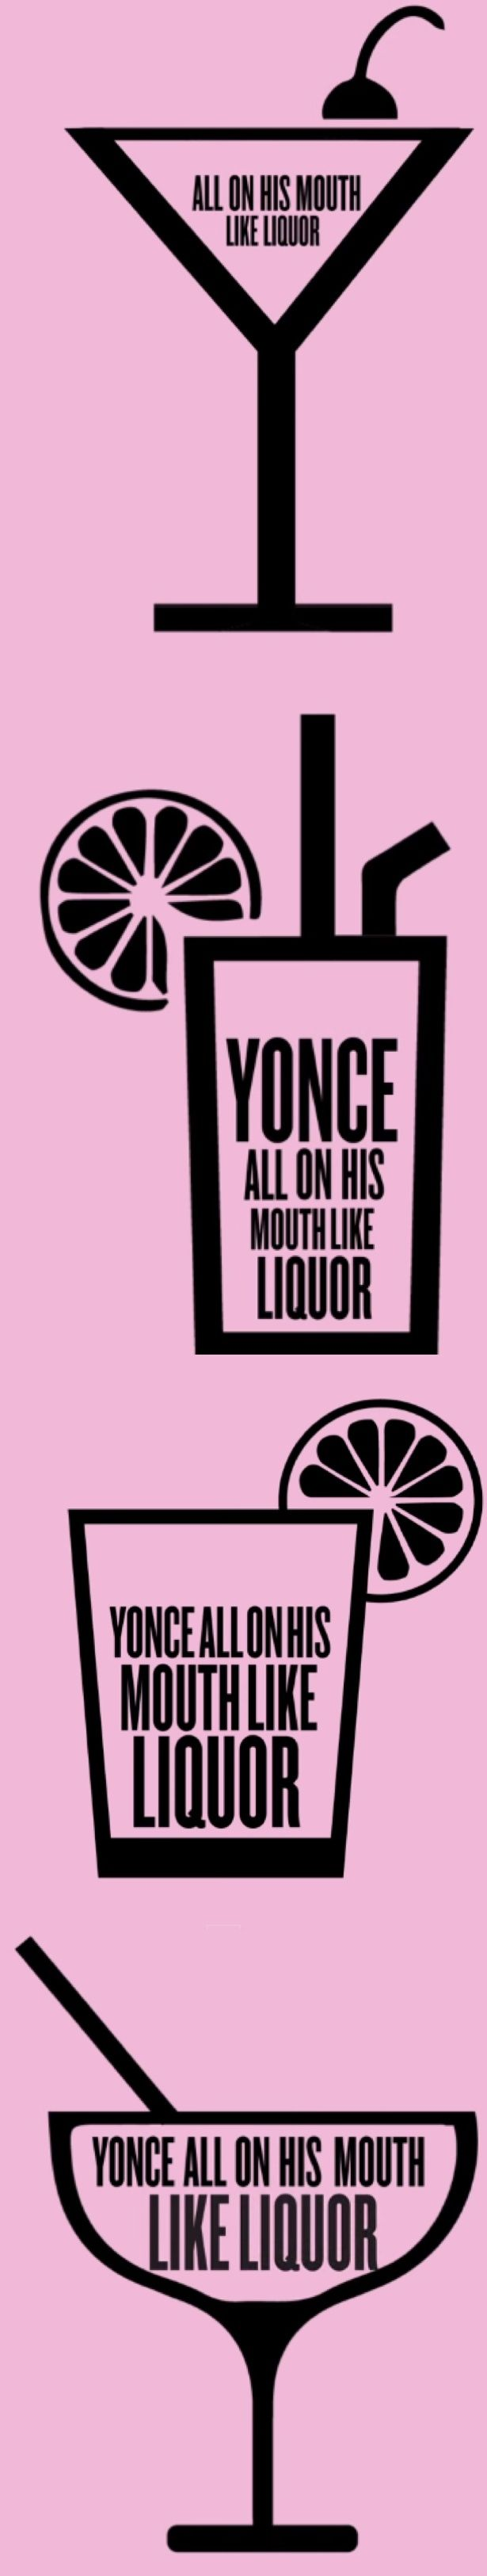 Beyonce - Youncè song lyrics